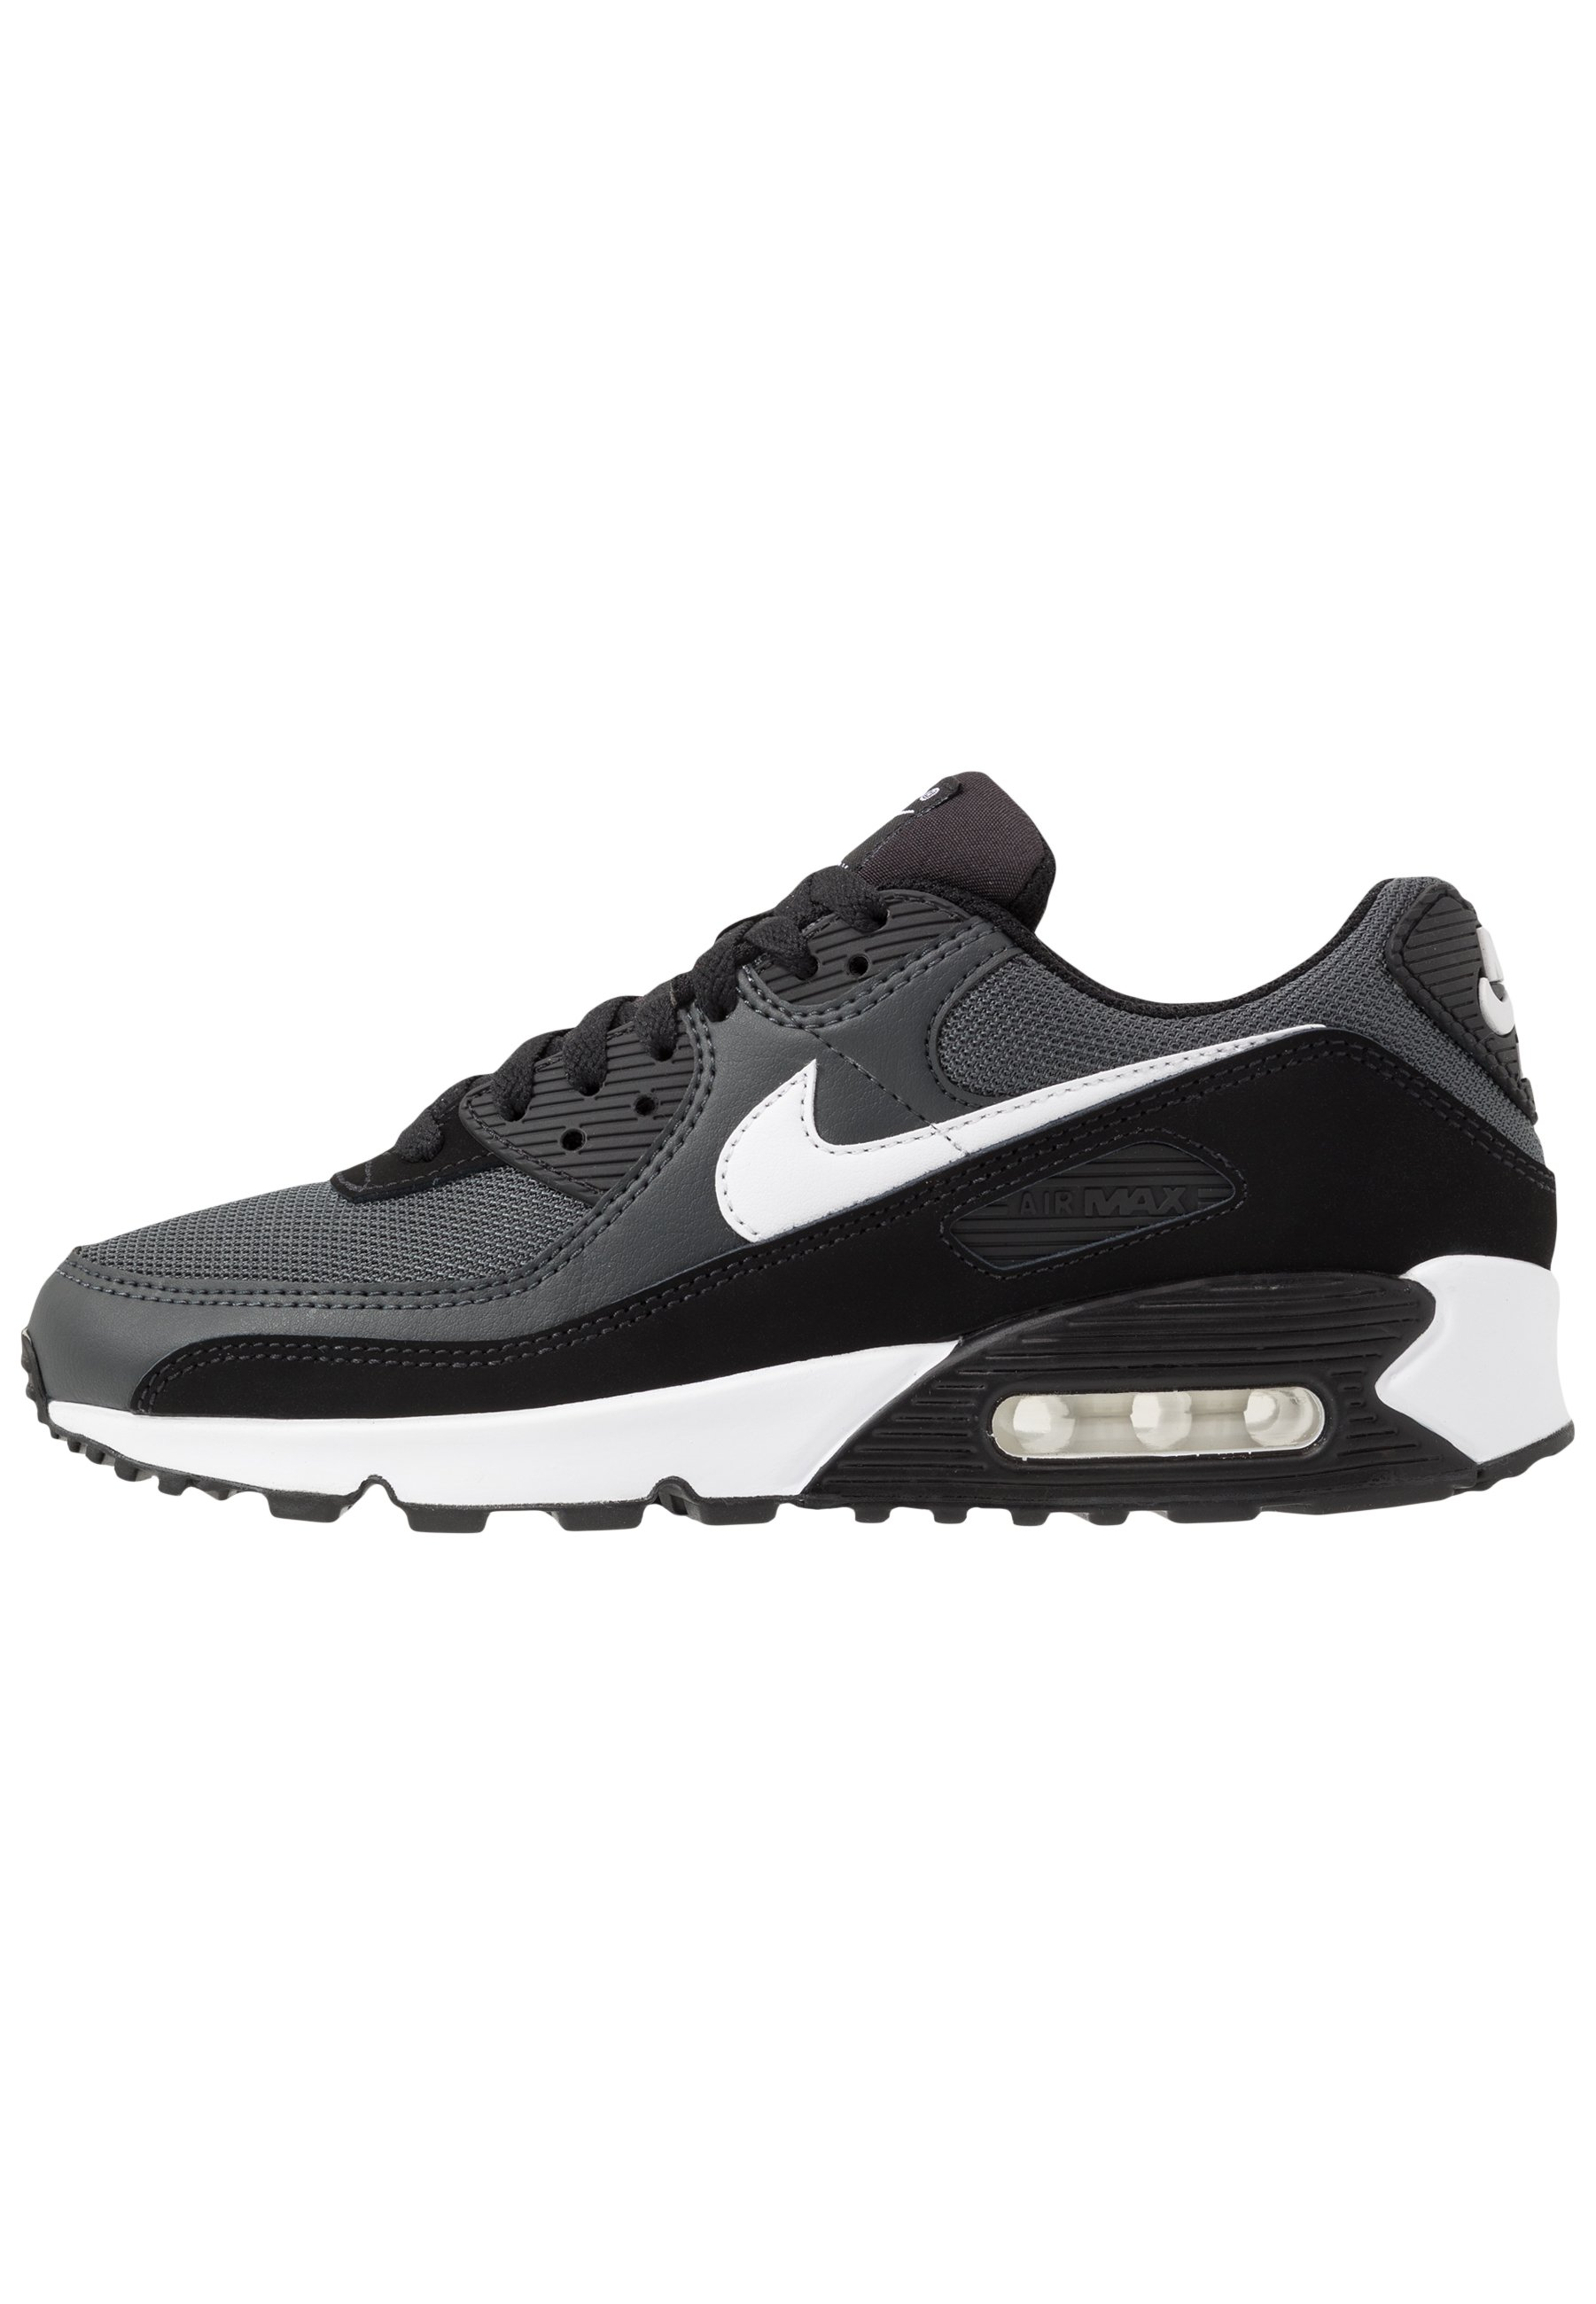 air max 90 nere bianche